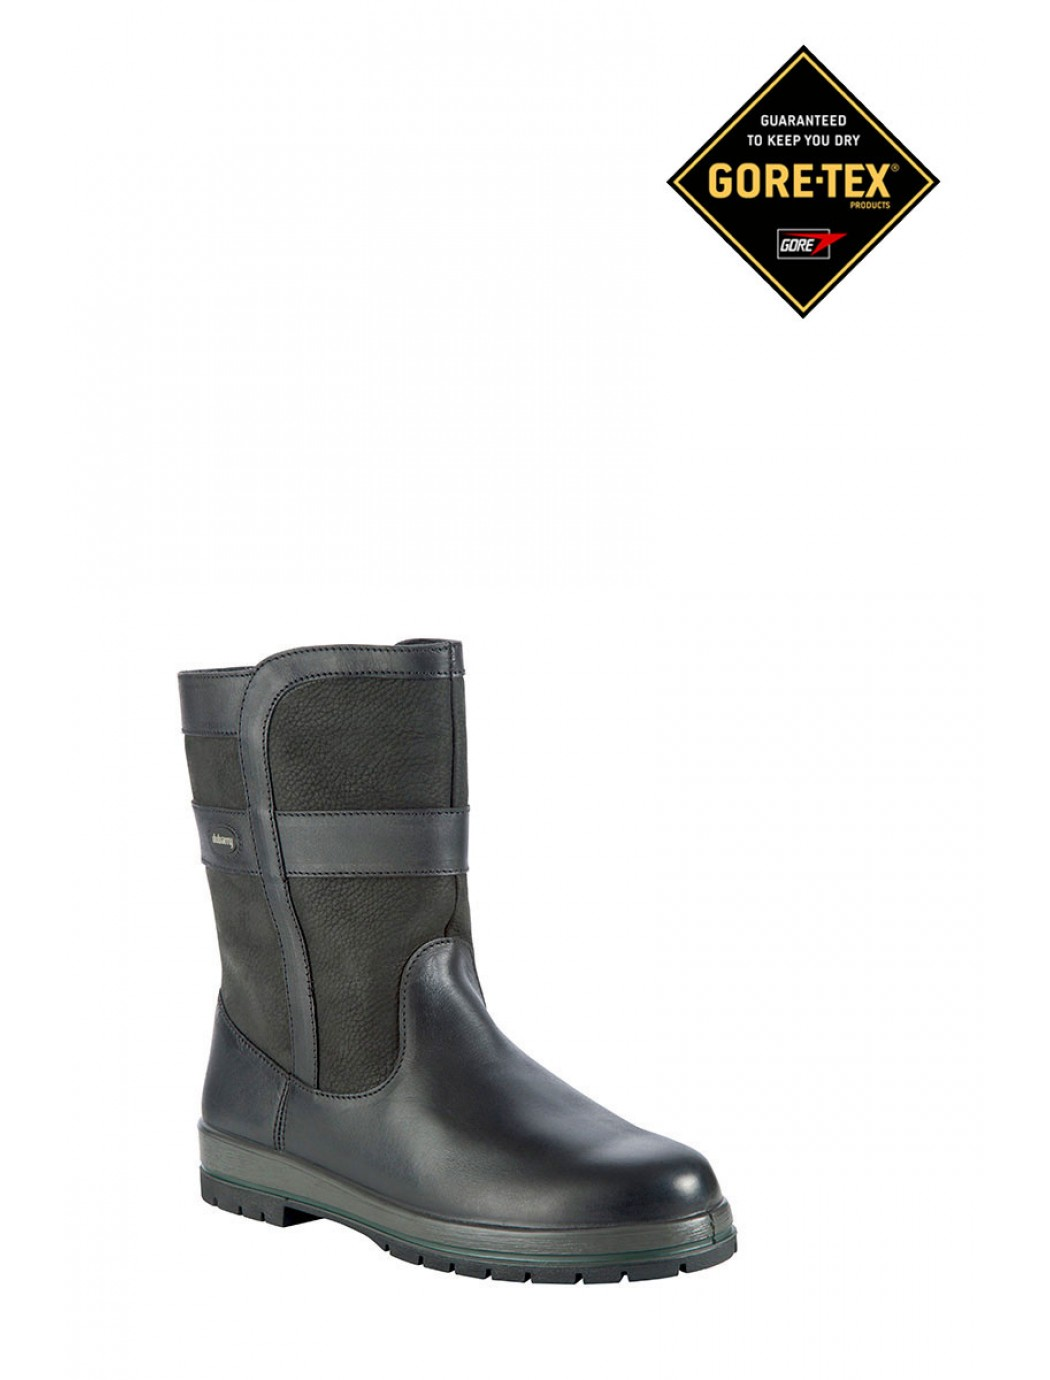 roscommon-country-boots-black 5